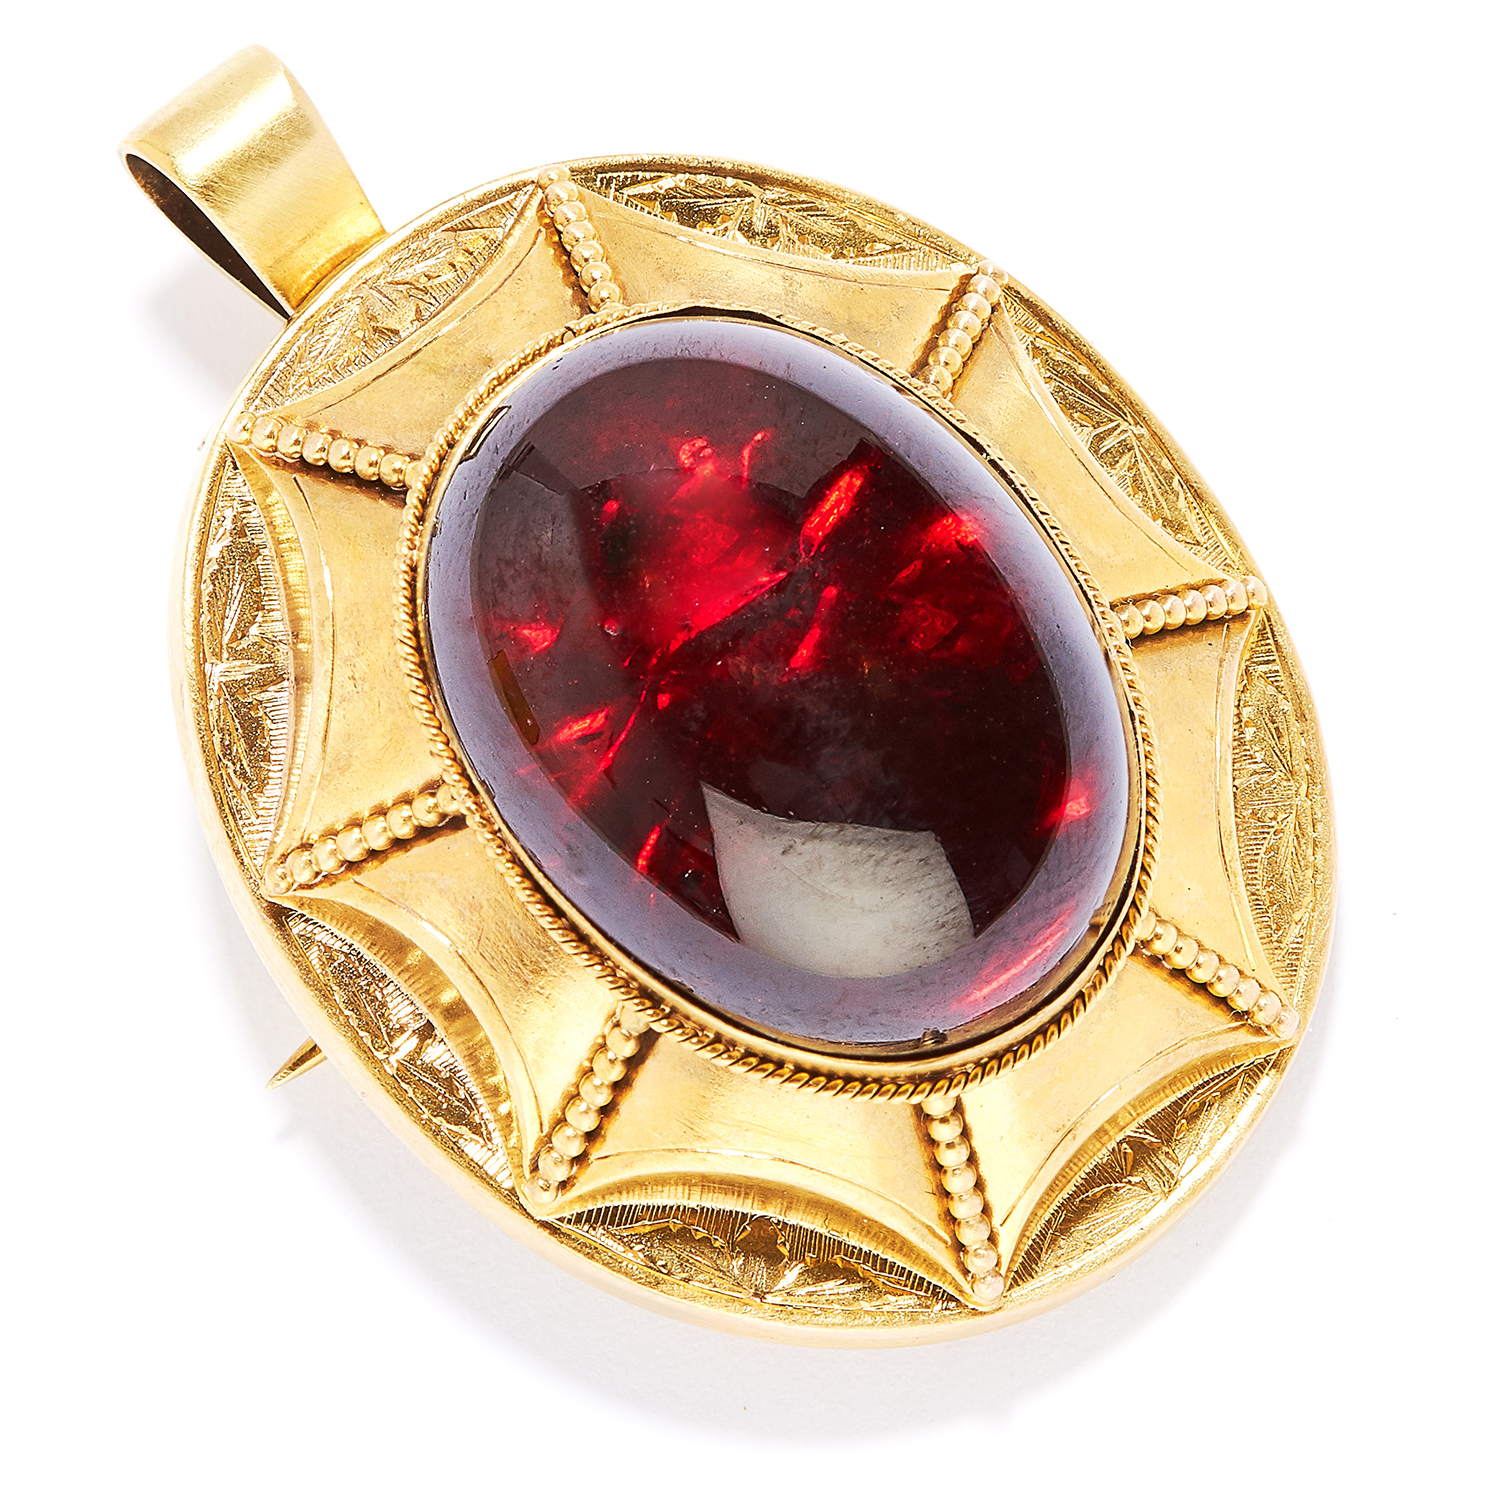 Los 9 - ANTIQUE GARNET MOURNING PENDANT / BROOCH, 19TH CENTURY in high carat yellow gold, set with an oval